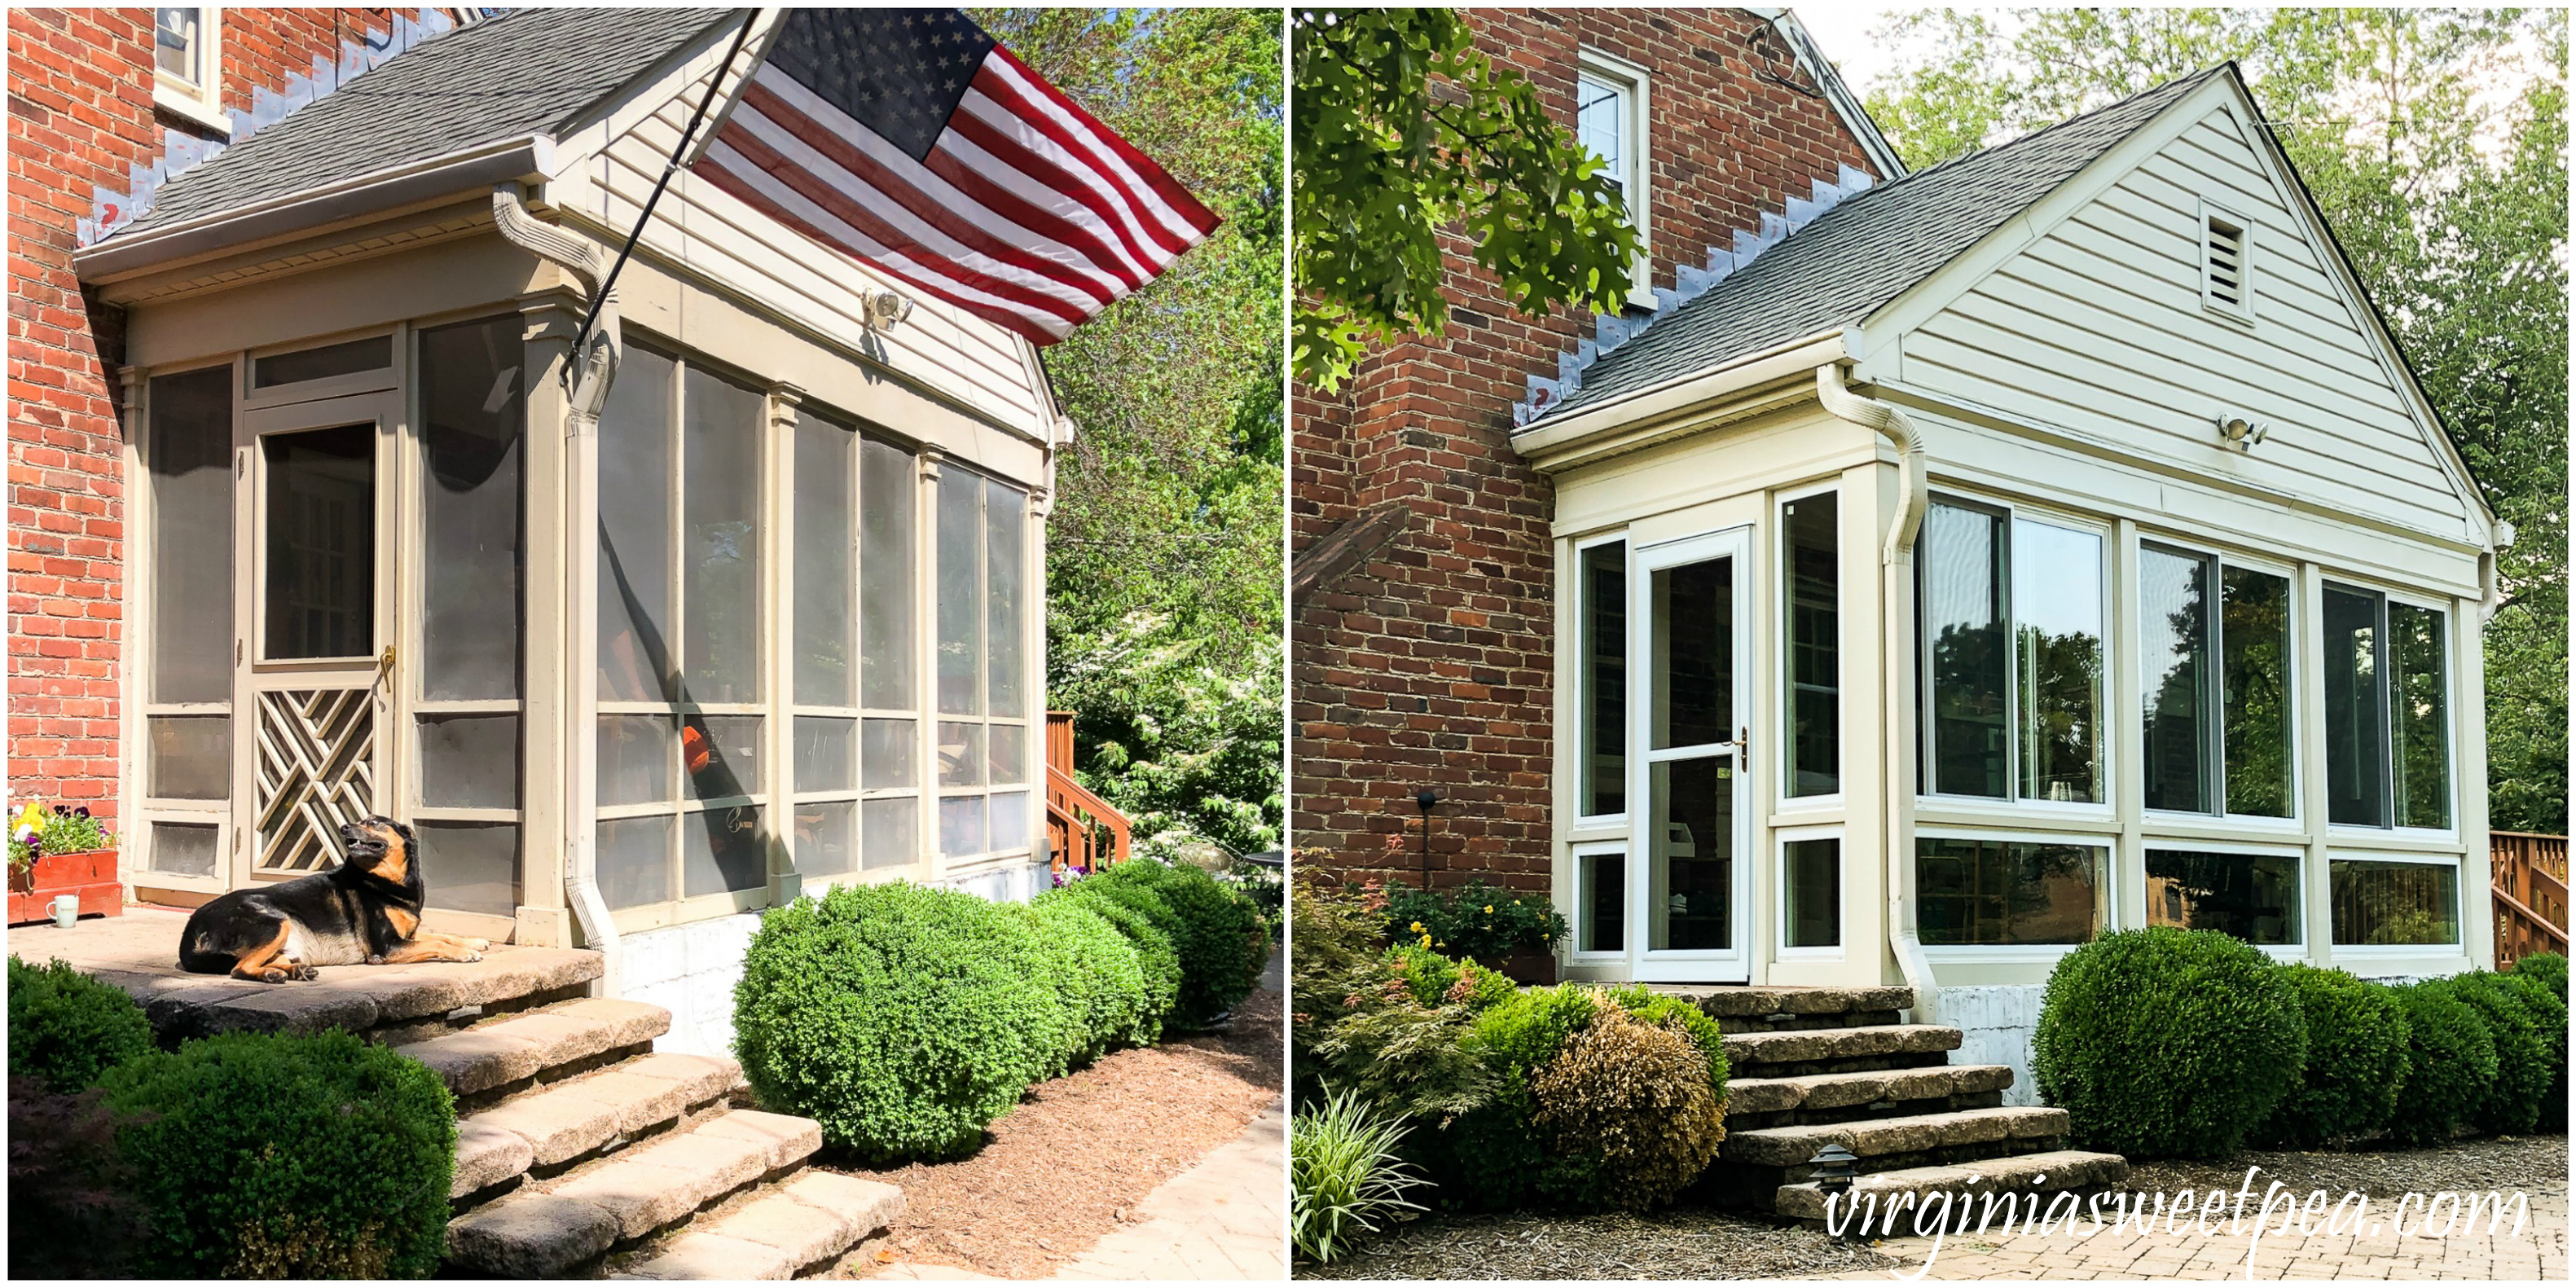 Before and After pictures of converting a screened porch into a sunroom.